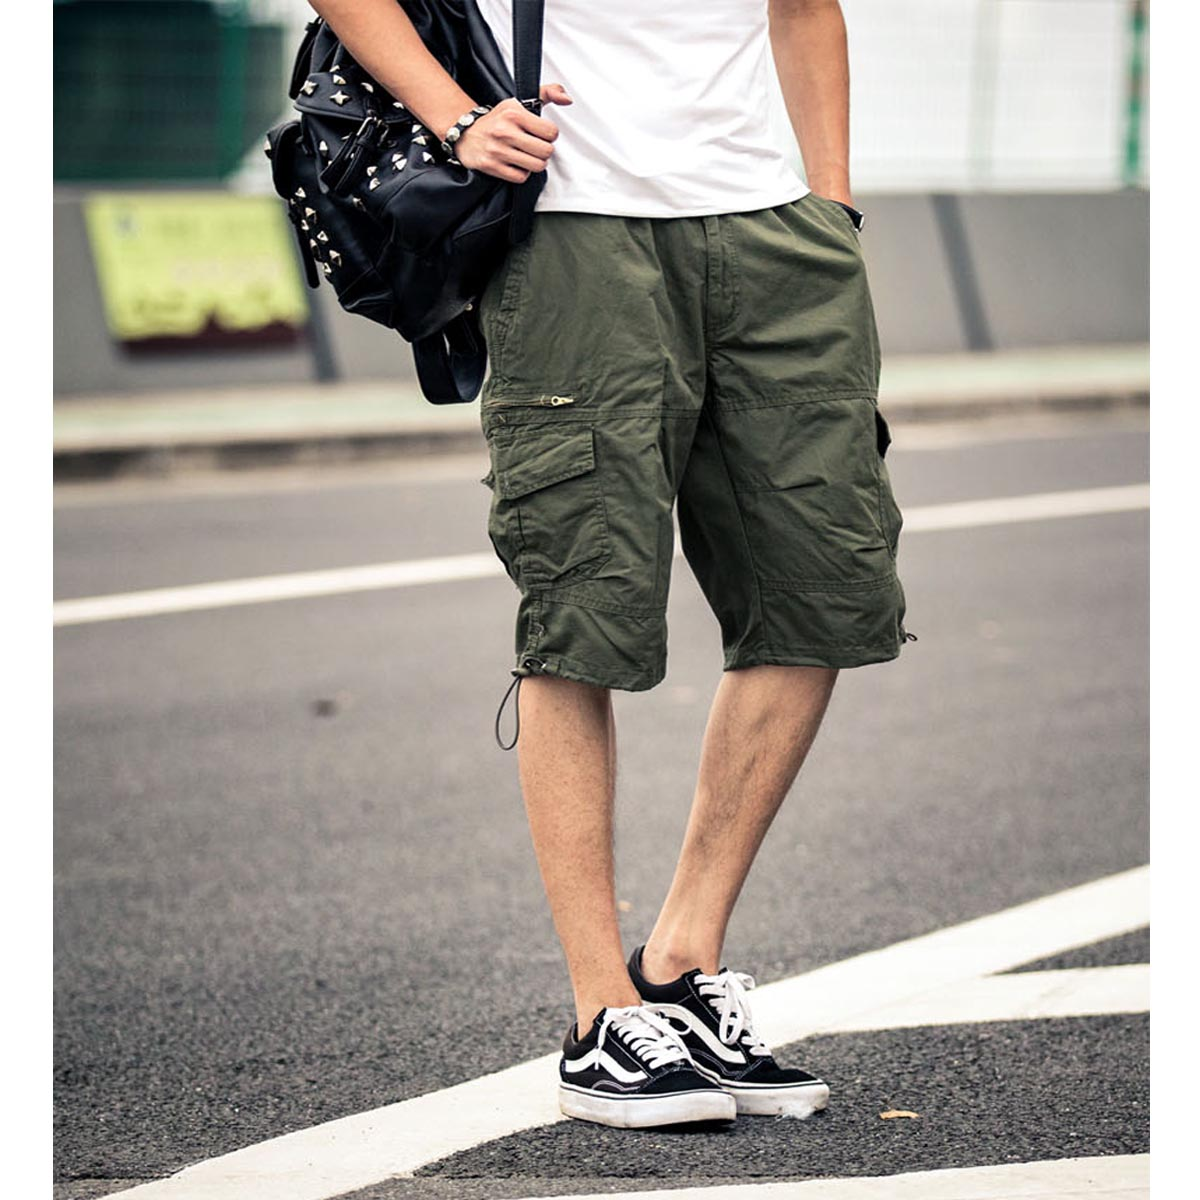 New coolMens twill Cargo Combat Trousers Pocket Camo Work Military Army shorts Men clothing Men Shorts